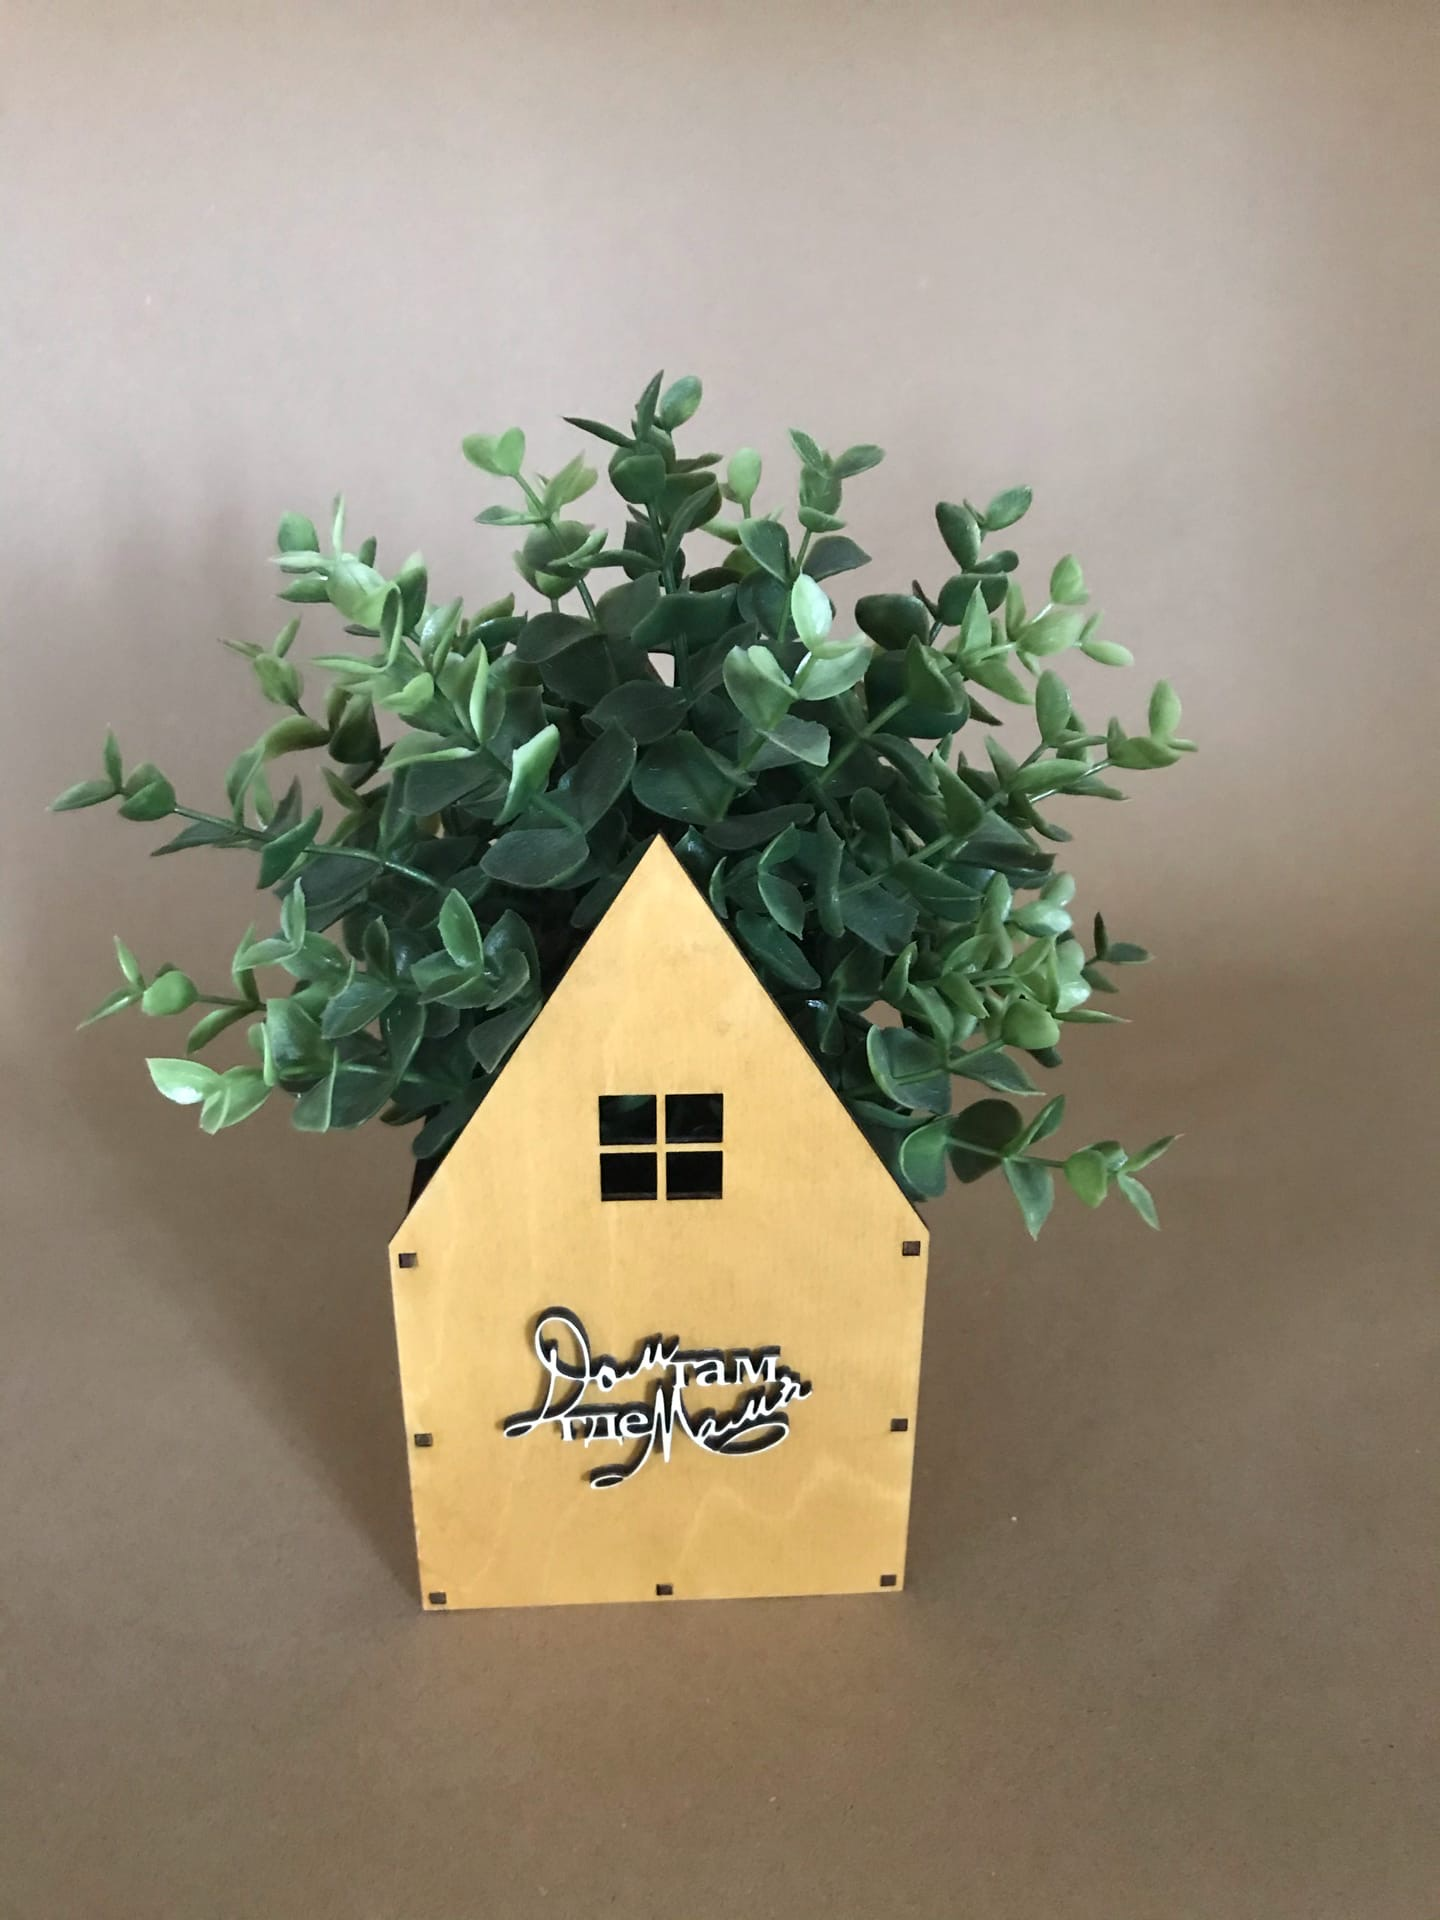 Laser Cut House Shaped Flower Box Free CDR Vectors Art